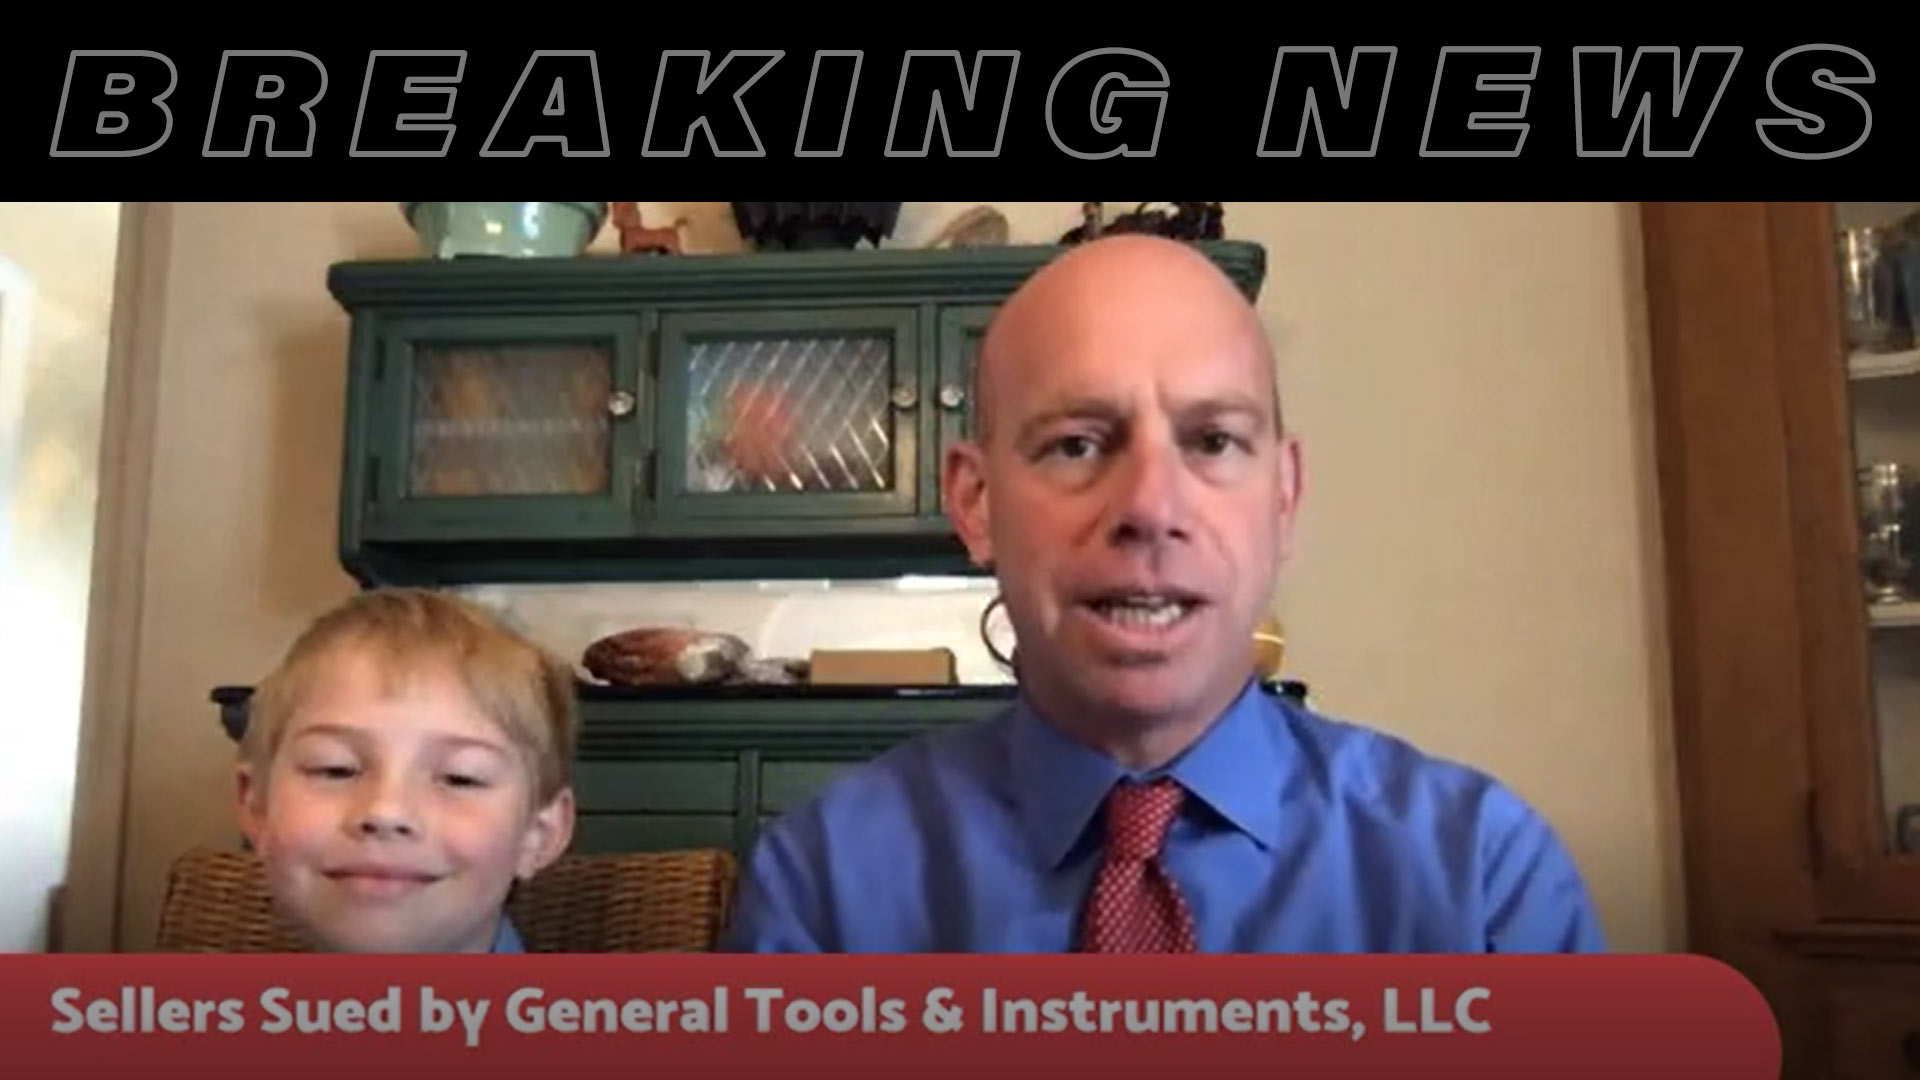 Sellers sued by General Tools & Instruments LLC